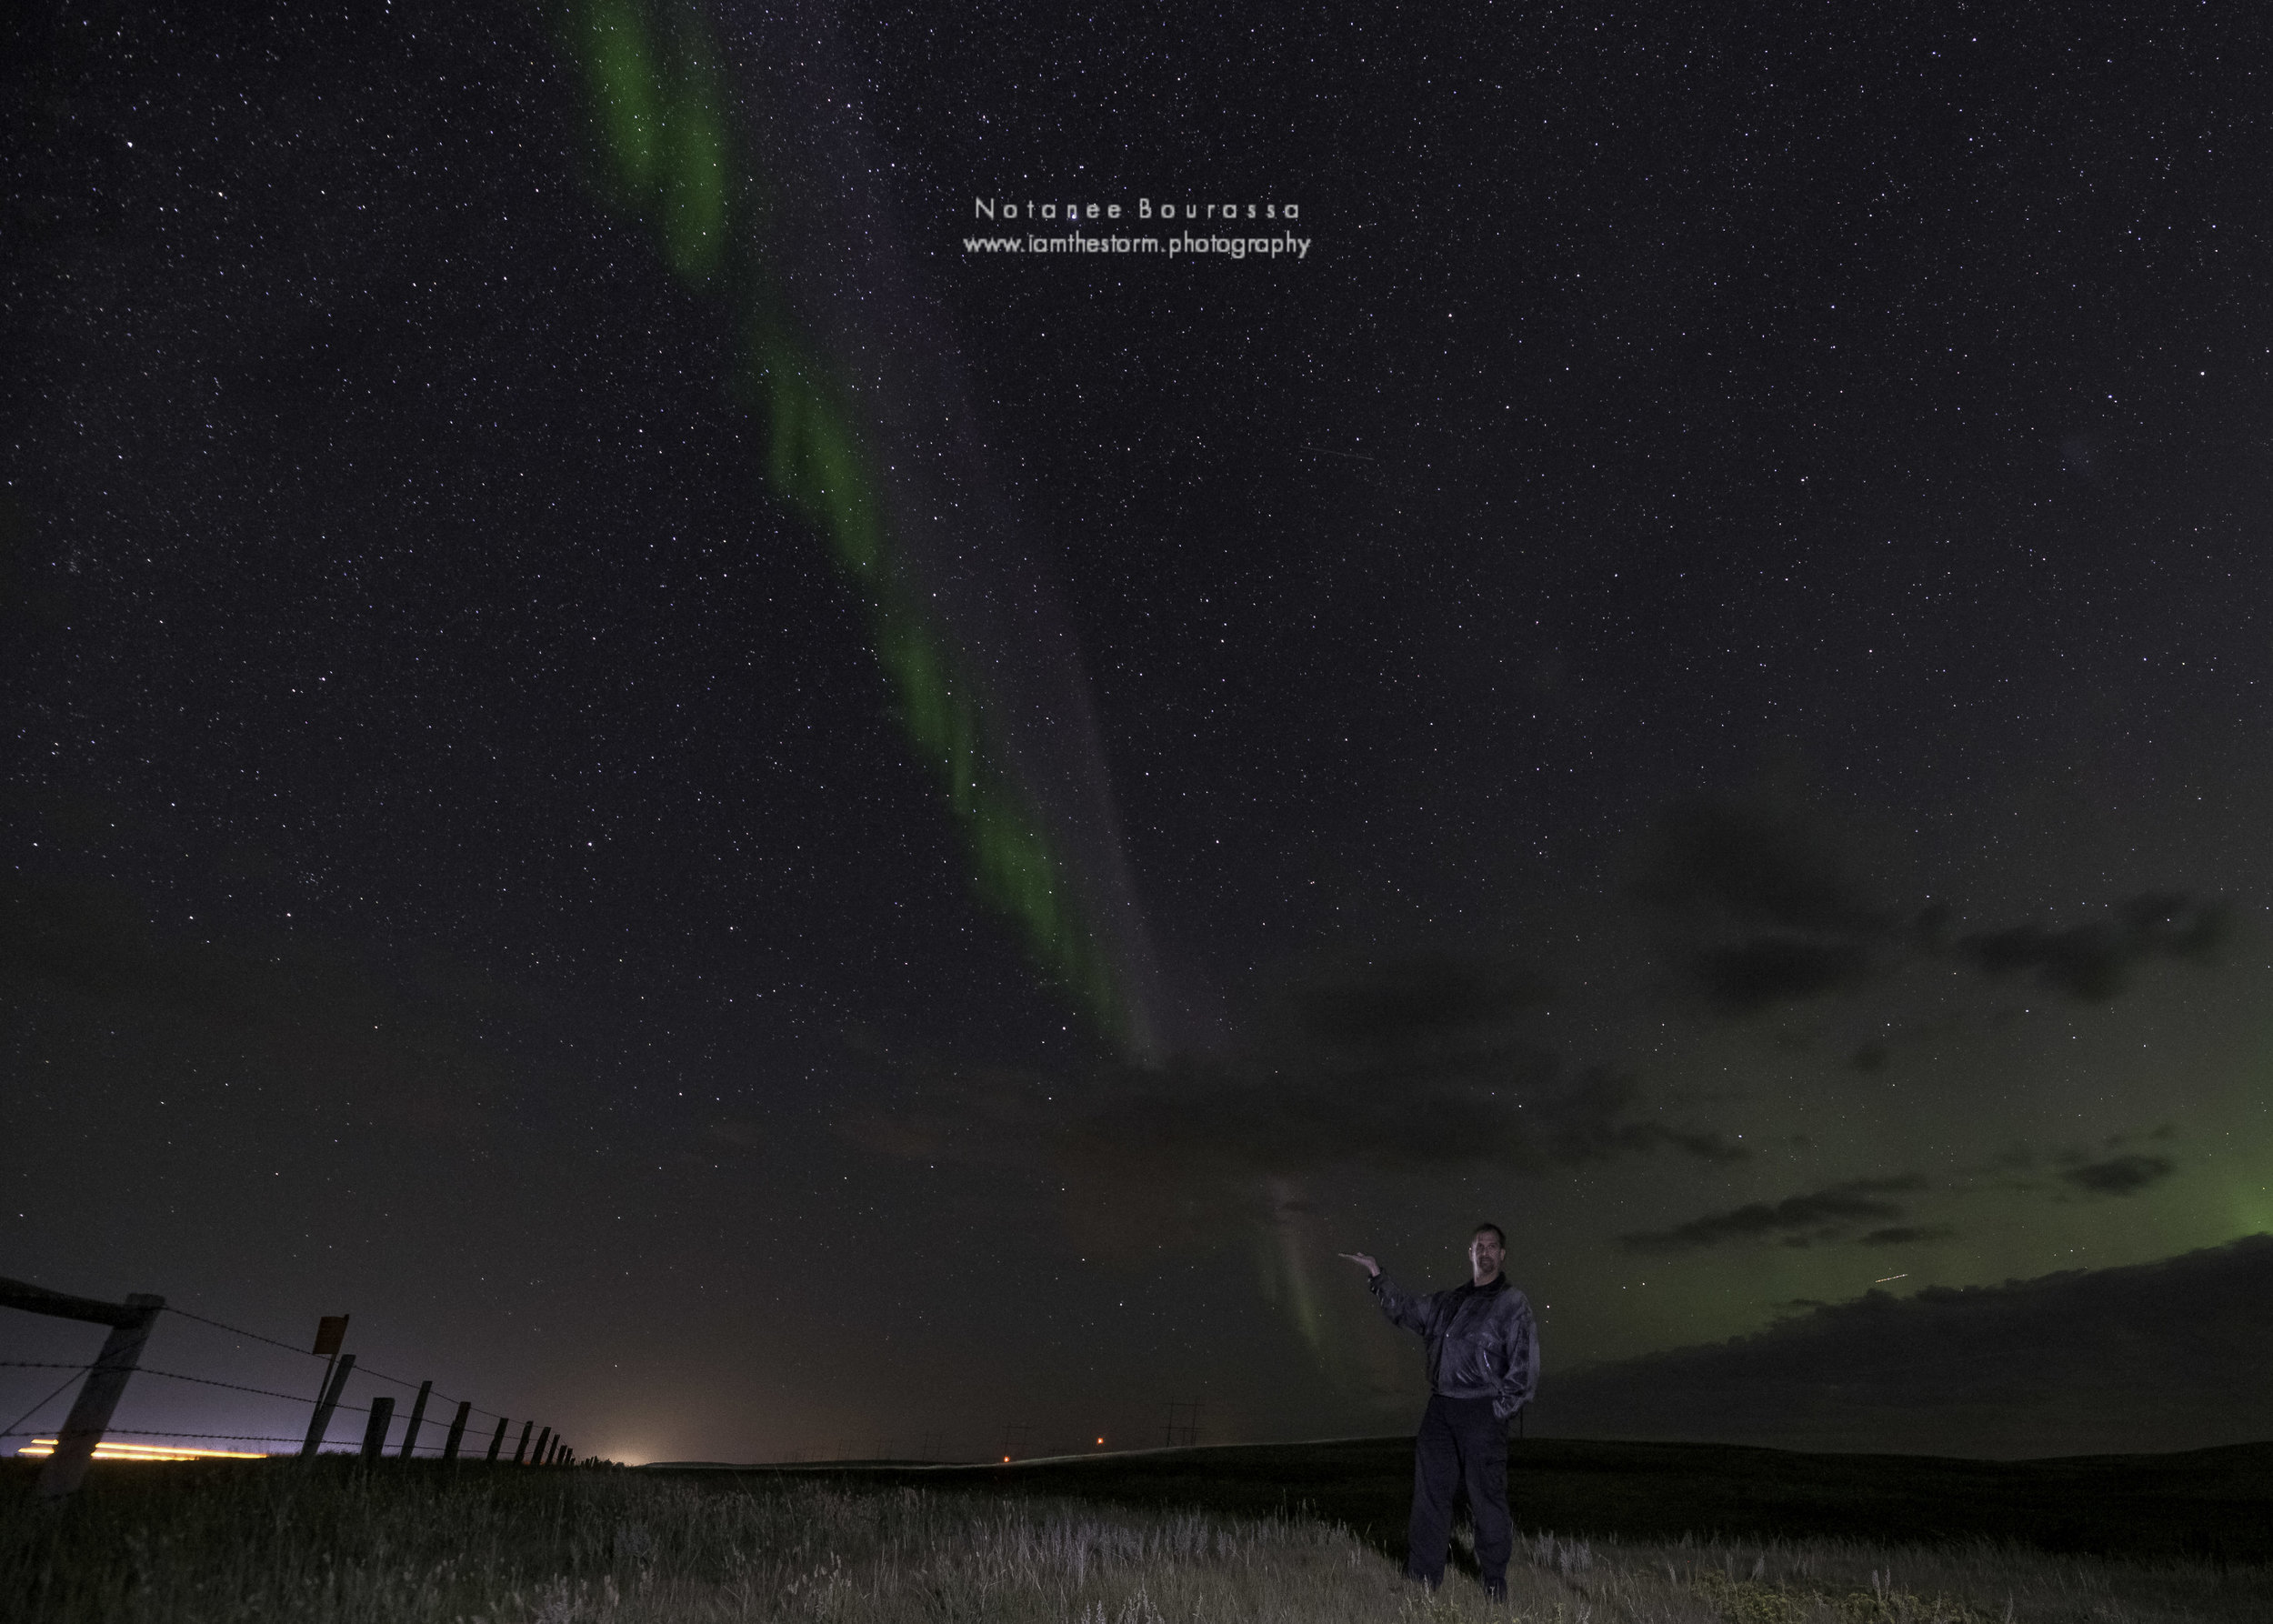 STEVE, the (Strong Thermal Emission Velocity Enhancement) as seen to the west captured near Parkbeg SK after midnight on August 31st, 2019.